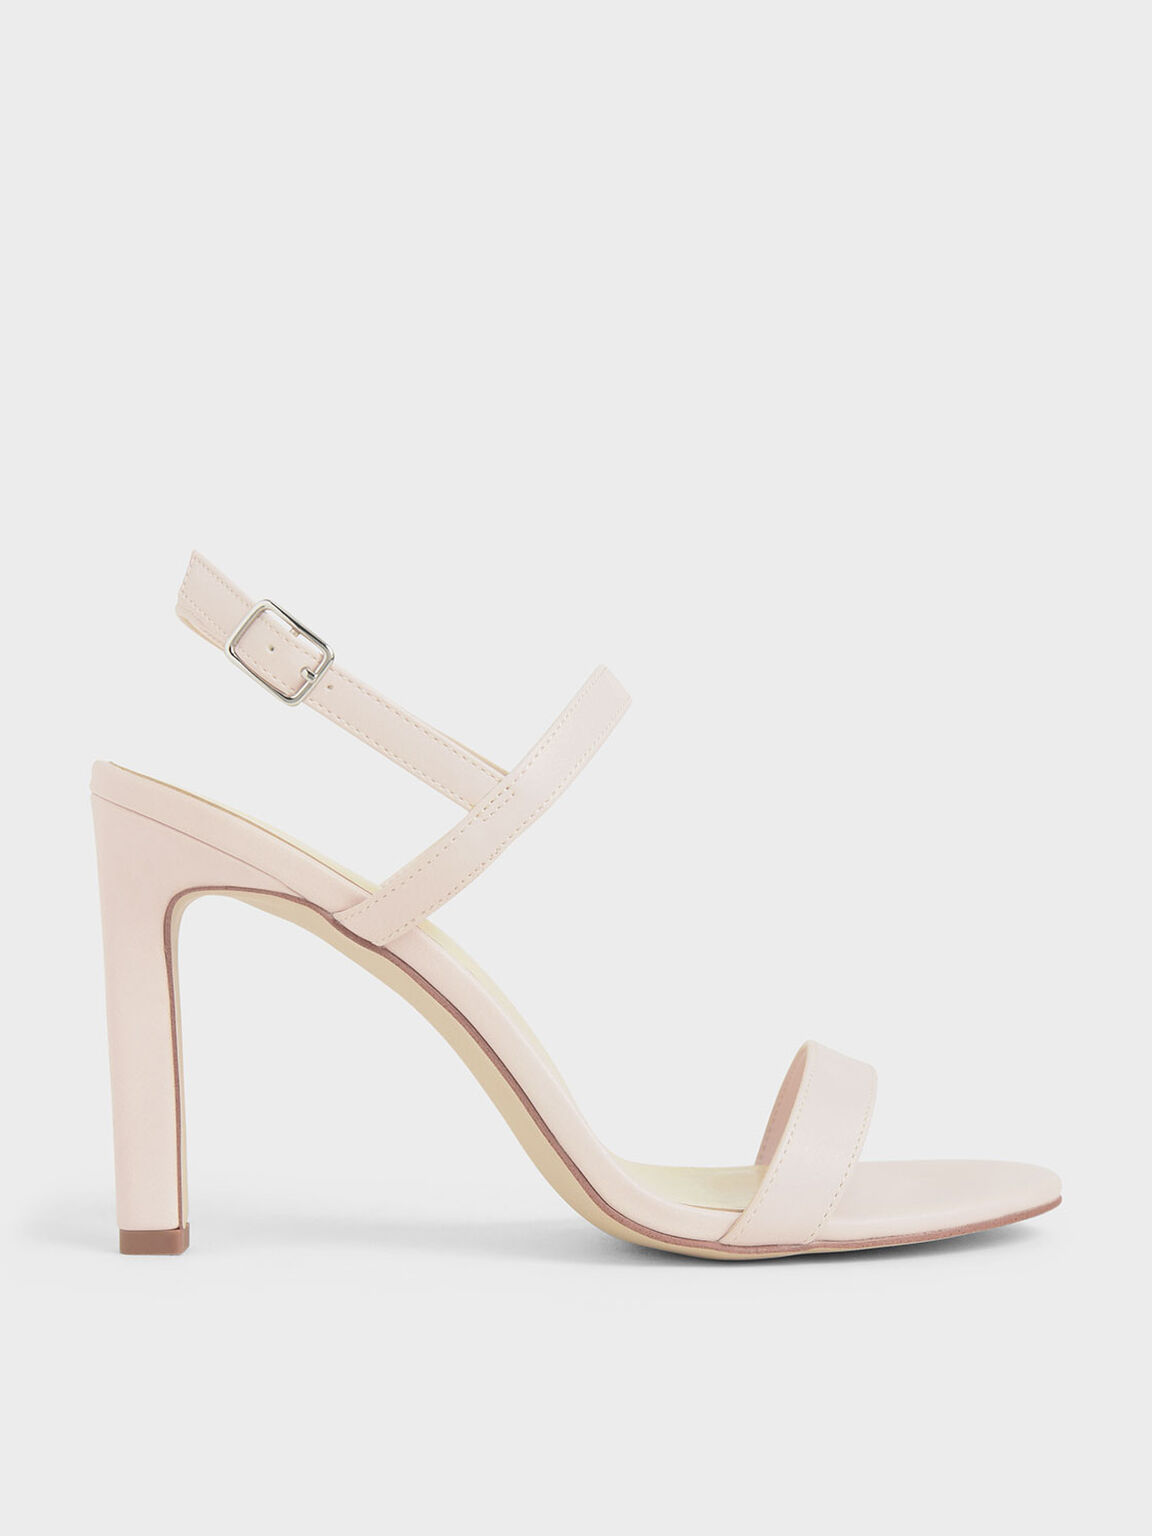 Slingback Stiletto Heel Sandals, Pink, hi-res